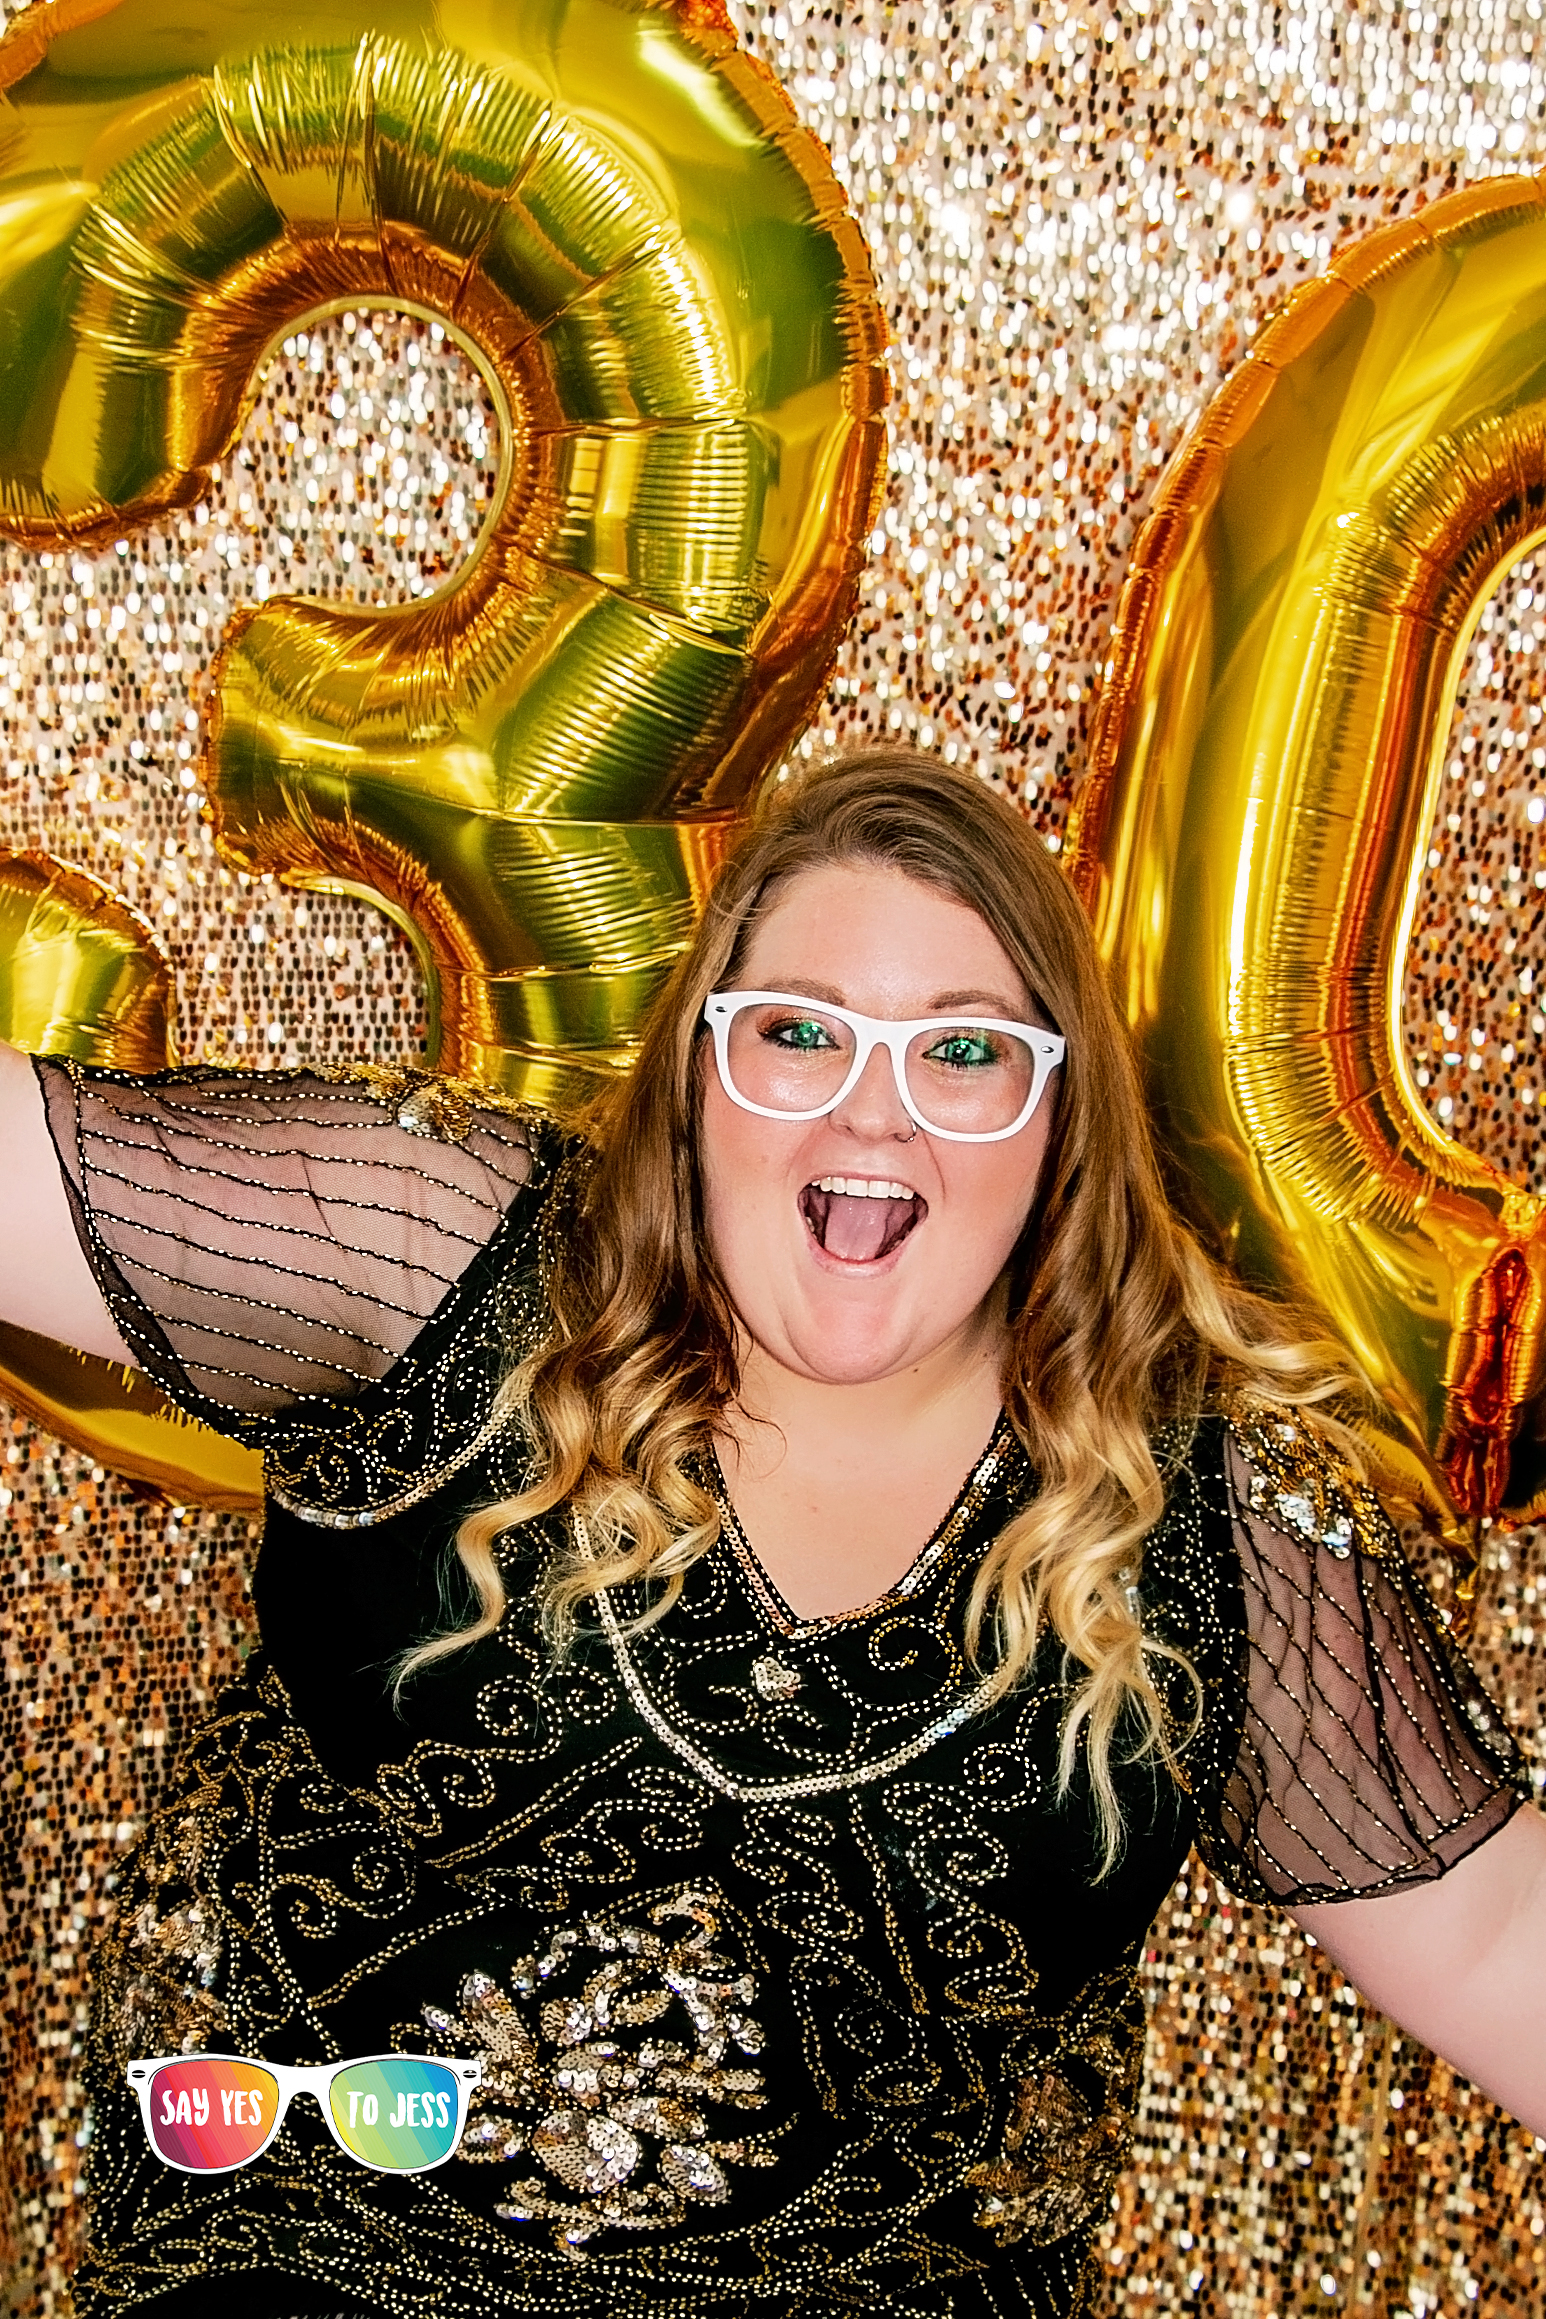 Say Yes To Jess does epic 30th Birthday shoot in Cincinnati Ohio.jpg